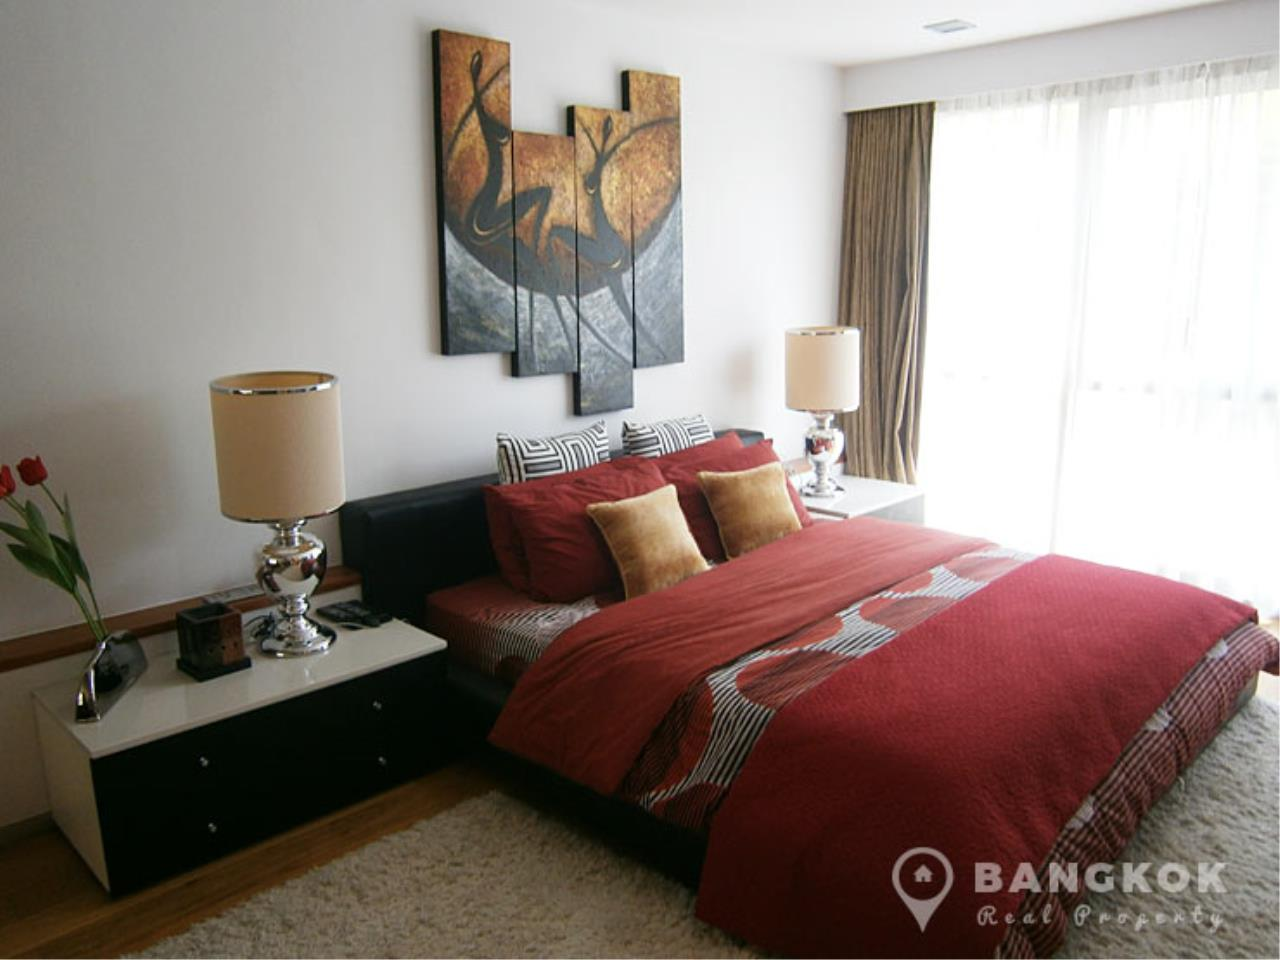 Bangkok Real Property Agency's Ficus Lane | A Fabulous Spacious 3 Bed 4 Bath Duplex near BTS 21